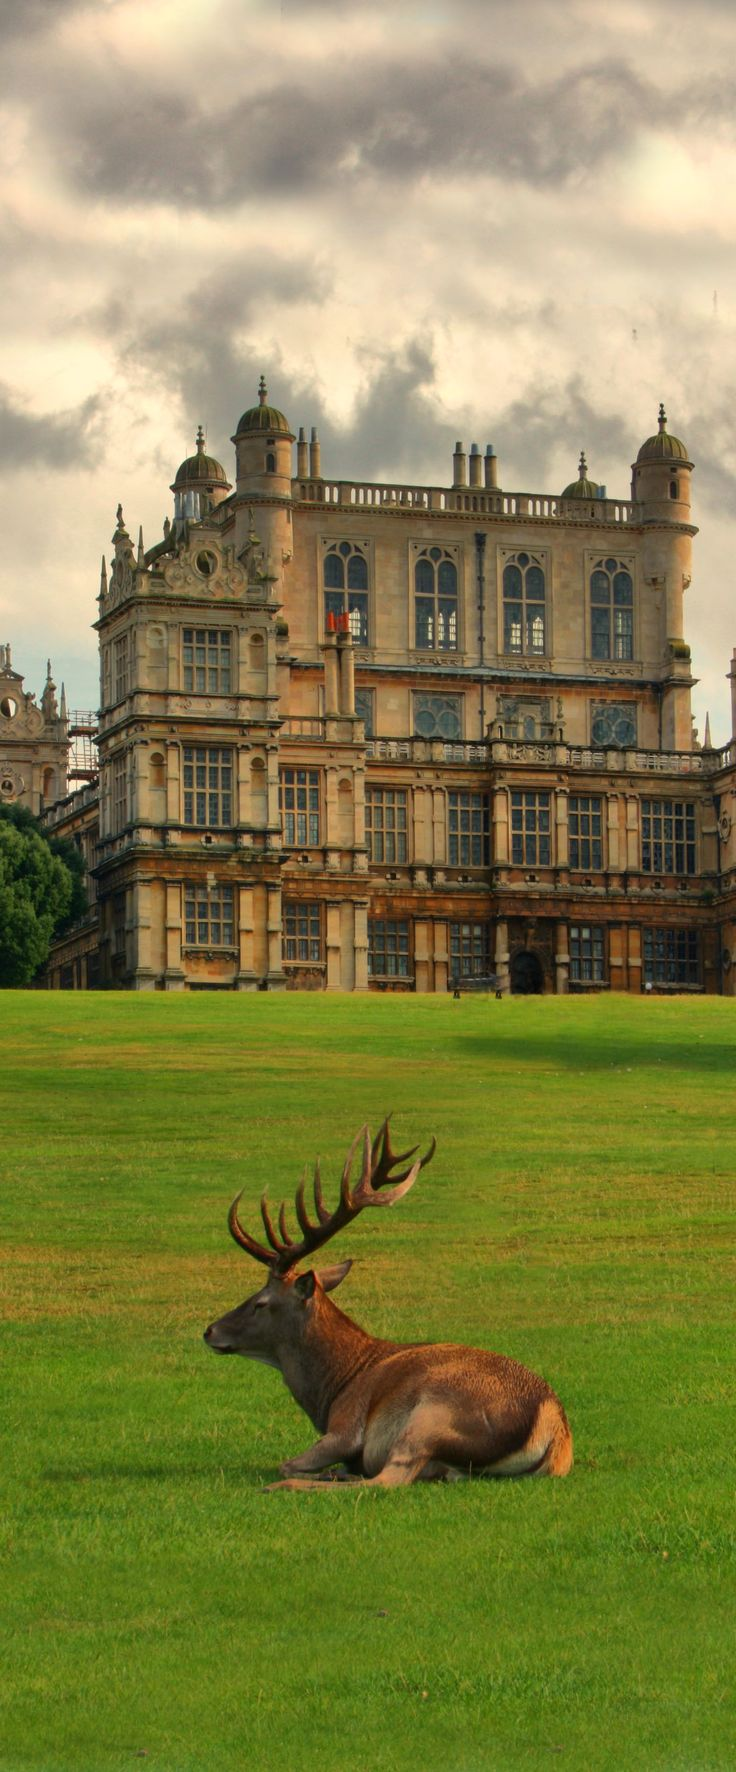 Wollaton Hall, Nottingham, England, UK